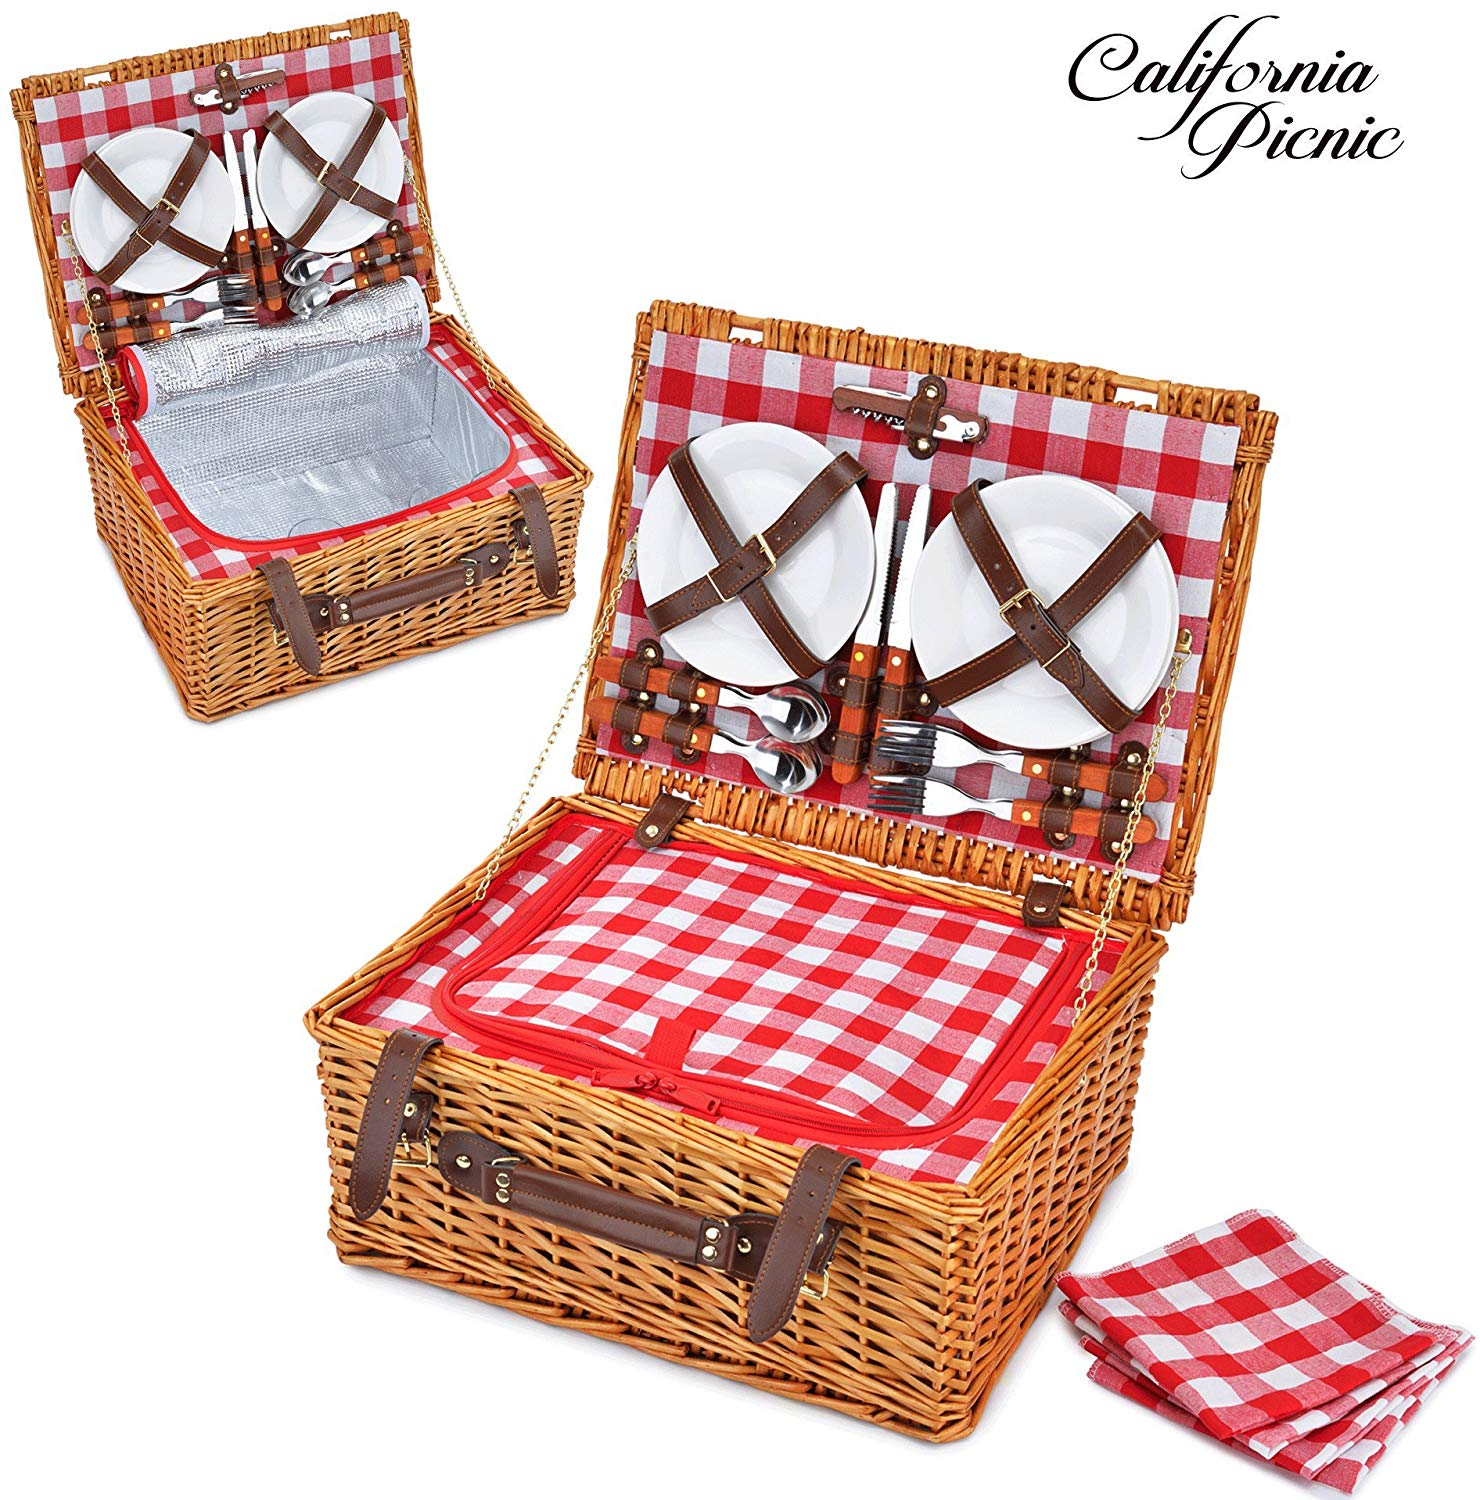 Picnic Basket Set for 4 Person | INSULATED Red Picnic Hamper Set | Folding Picnic Blanket | Picnic Table Set | Picnic Plates | Picnic Supplies | Summer Picnic Kit | Picnic Utensils Cutlery Flatware